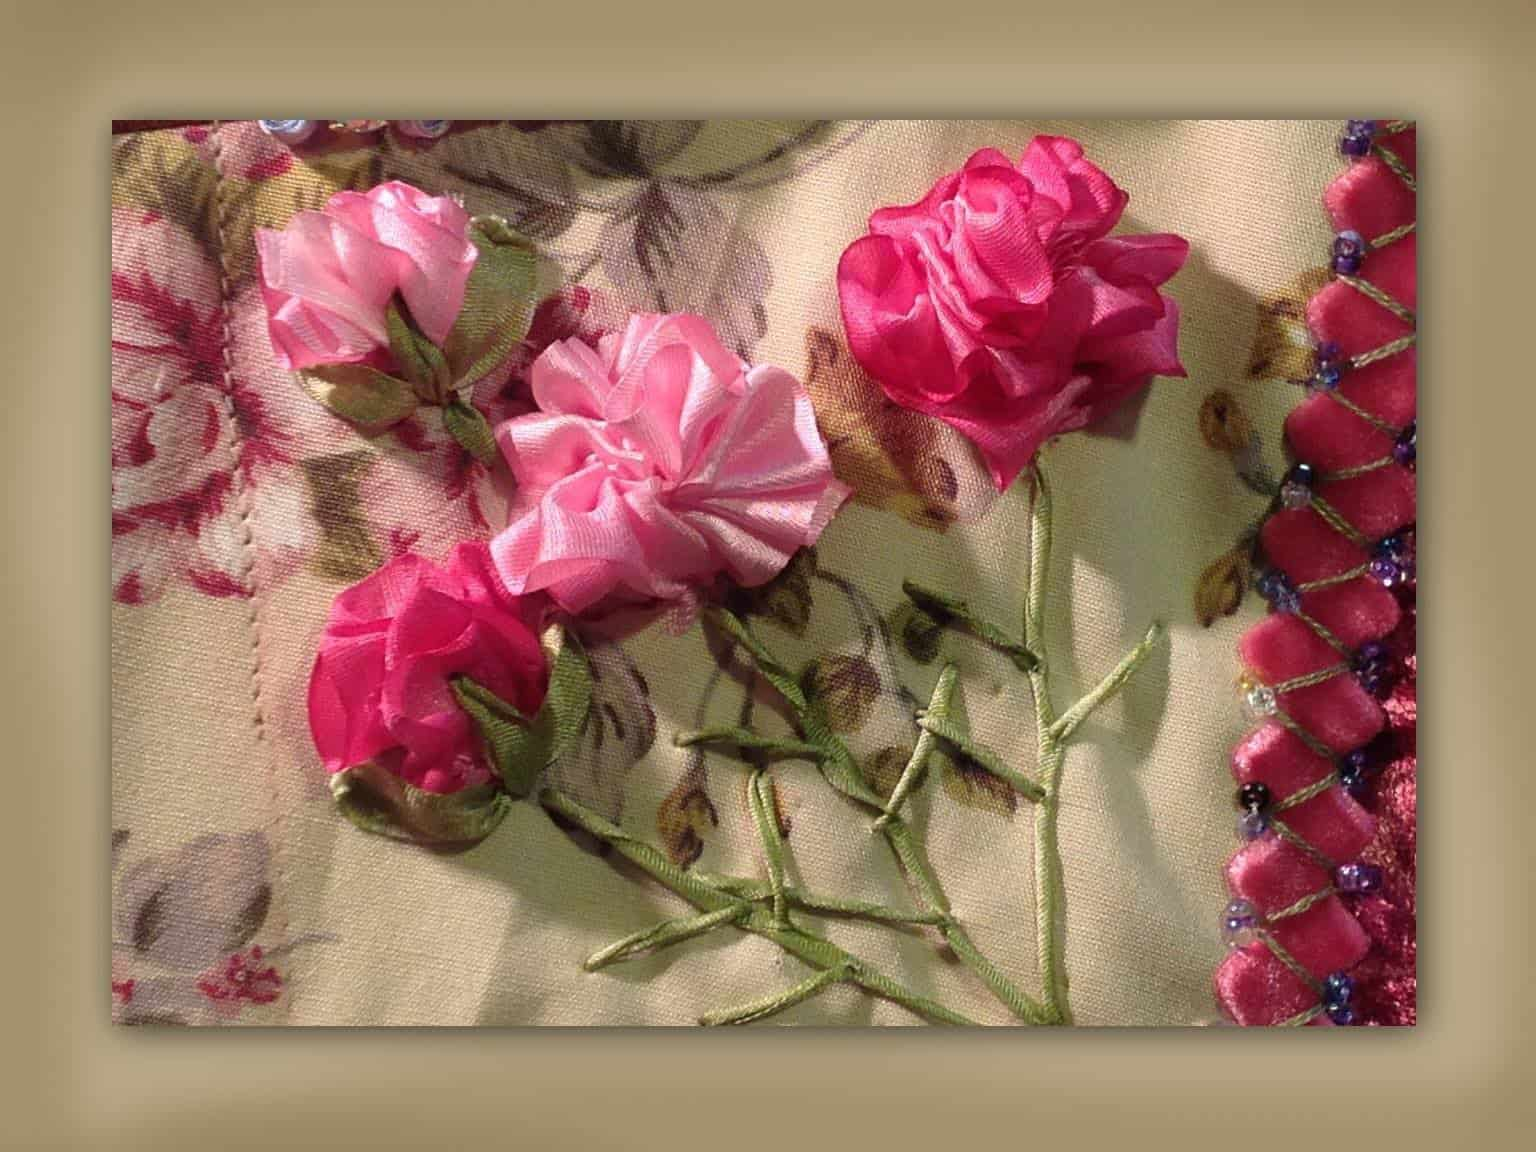 Ruffled roses with twisted ribbon stems